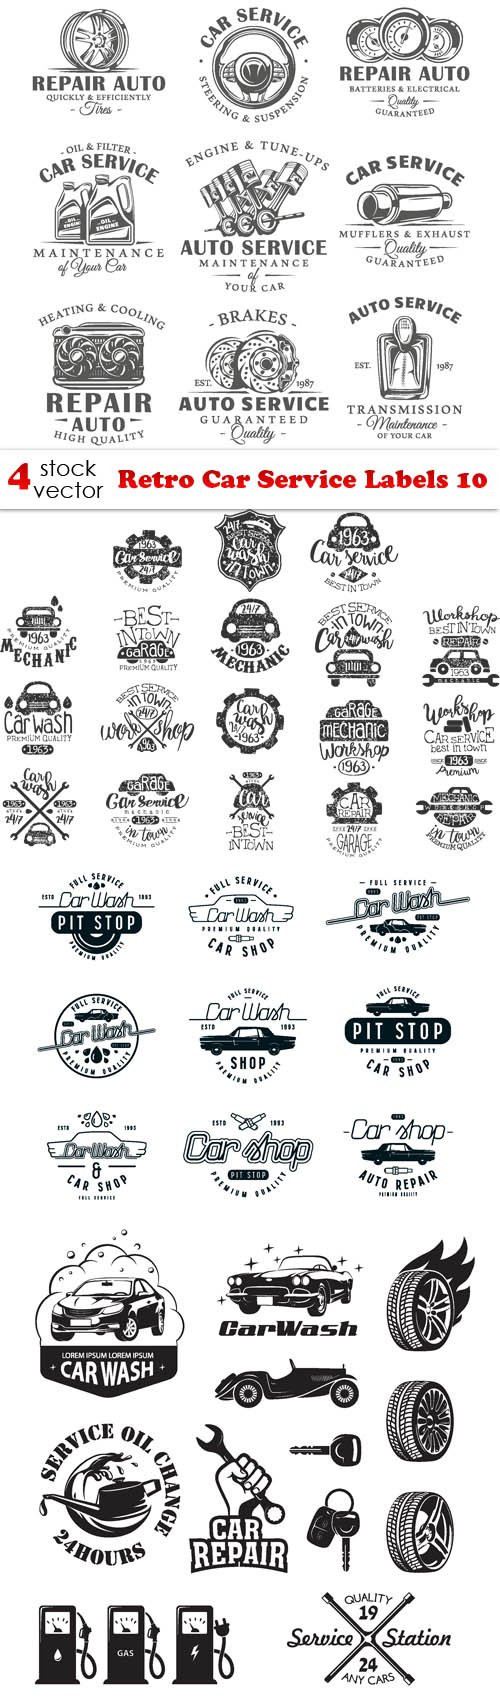 Vectors - Retro Car Service Labels 10